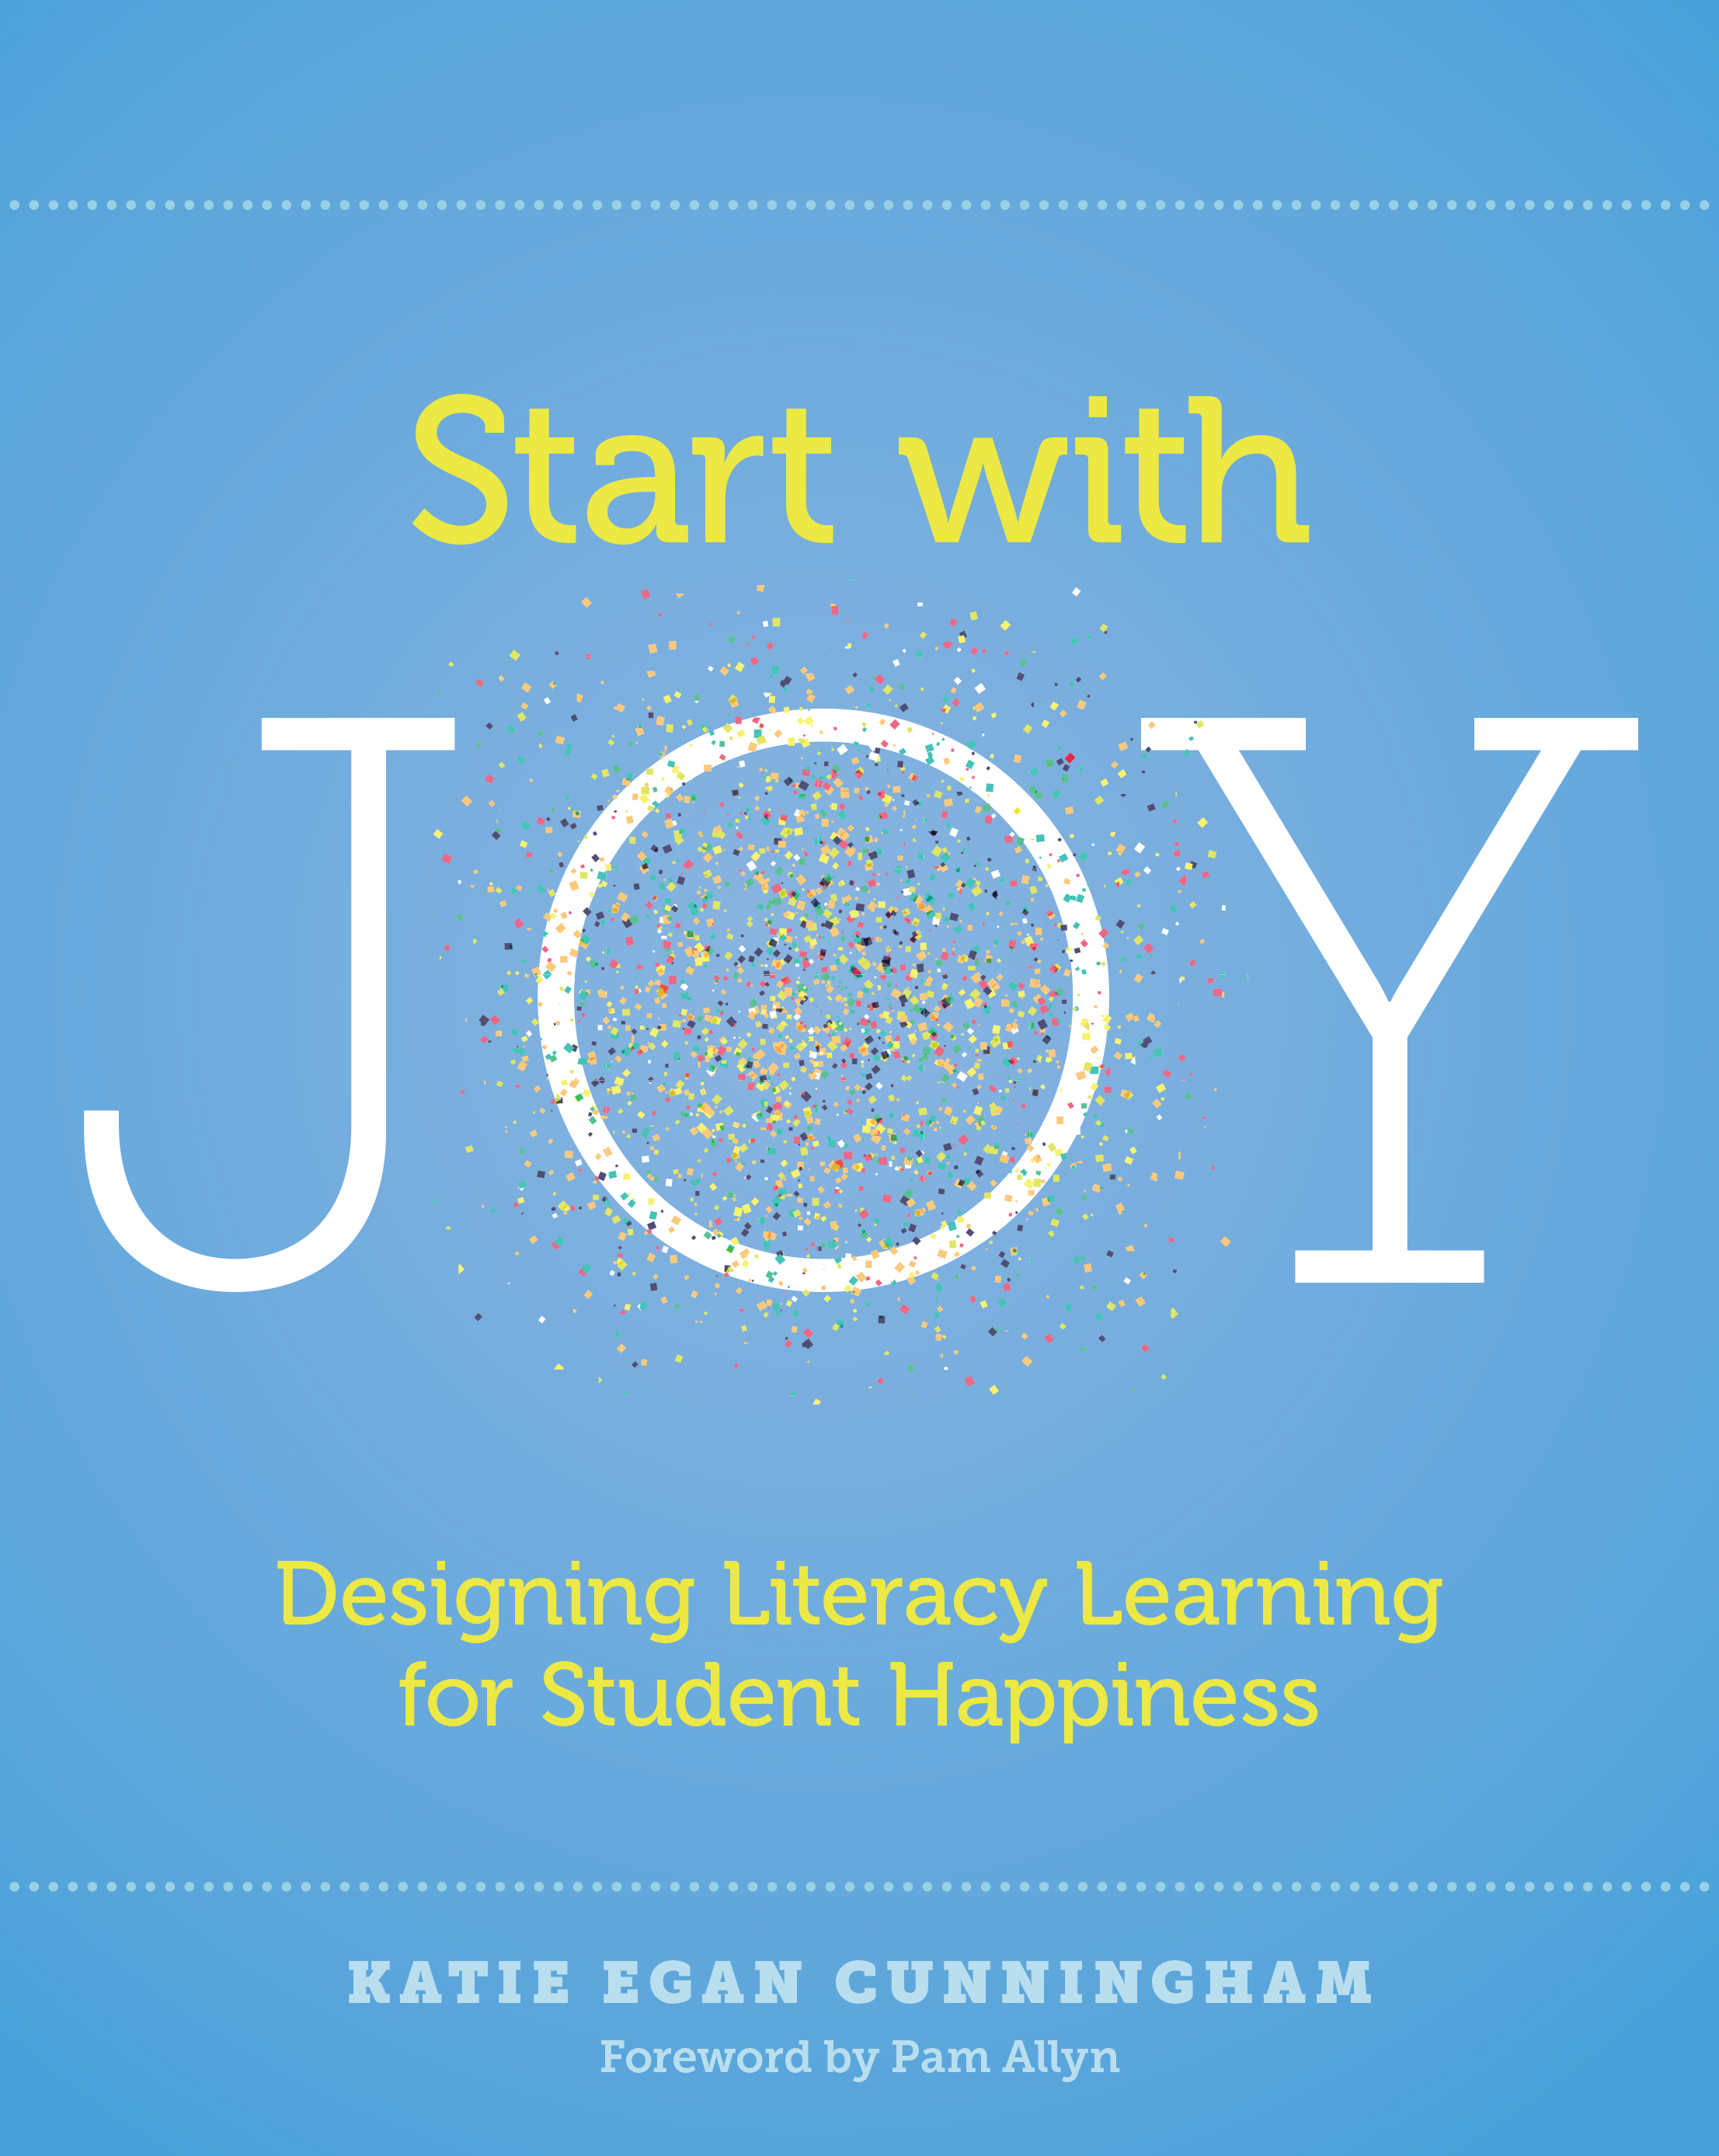 Start with Joy: Designing Literacy Learning for Student Happiness